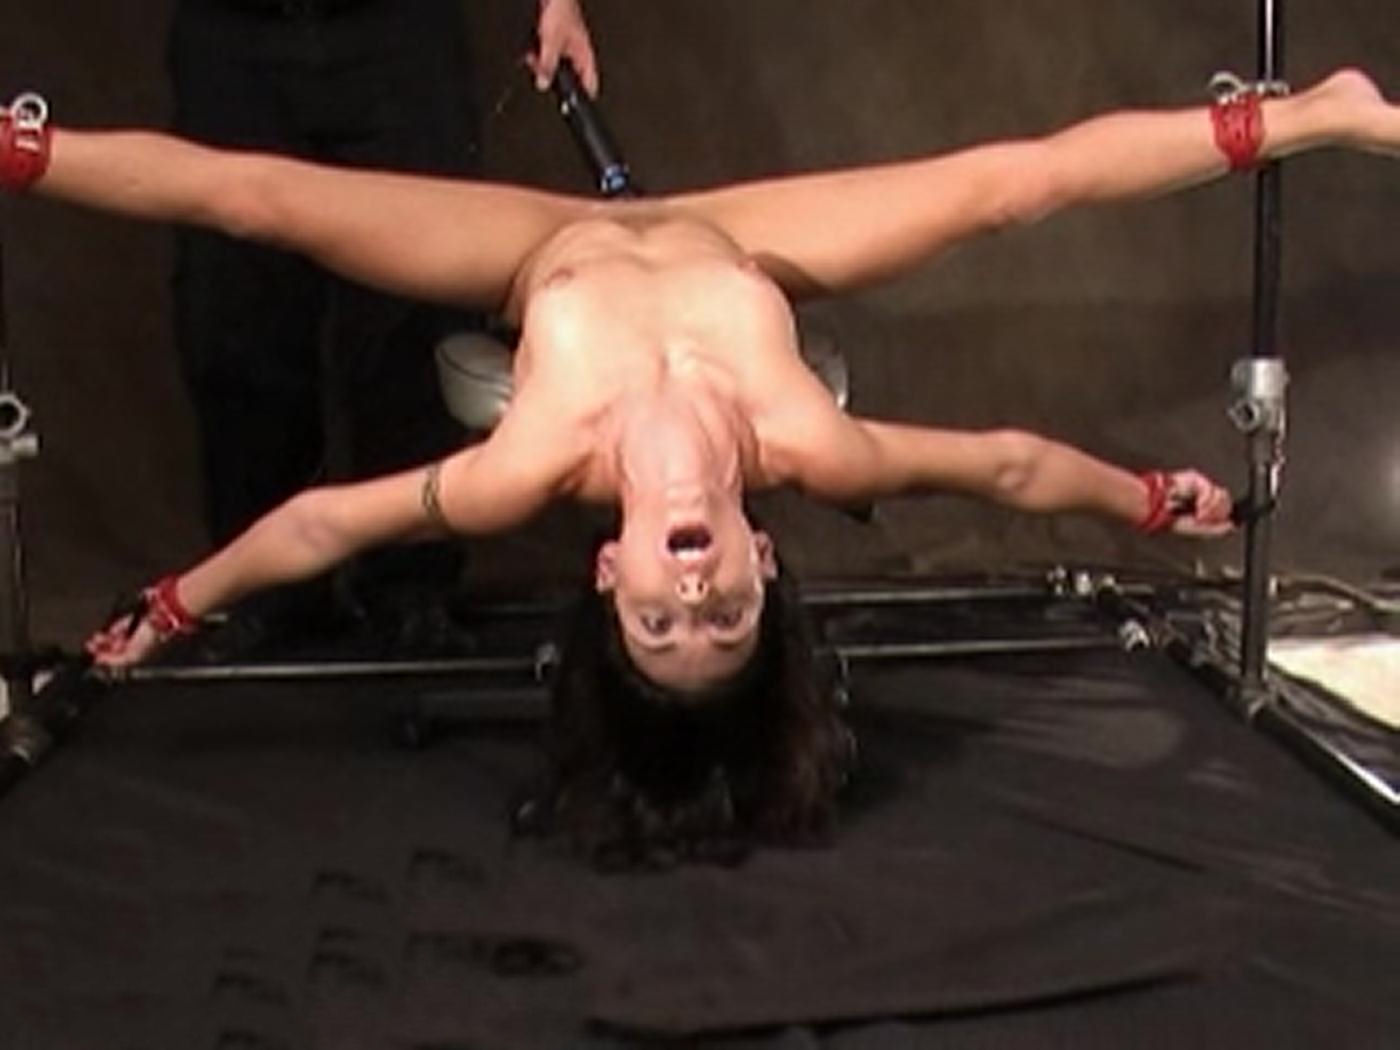 Skinny nude girls in bondage